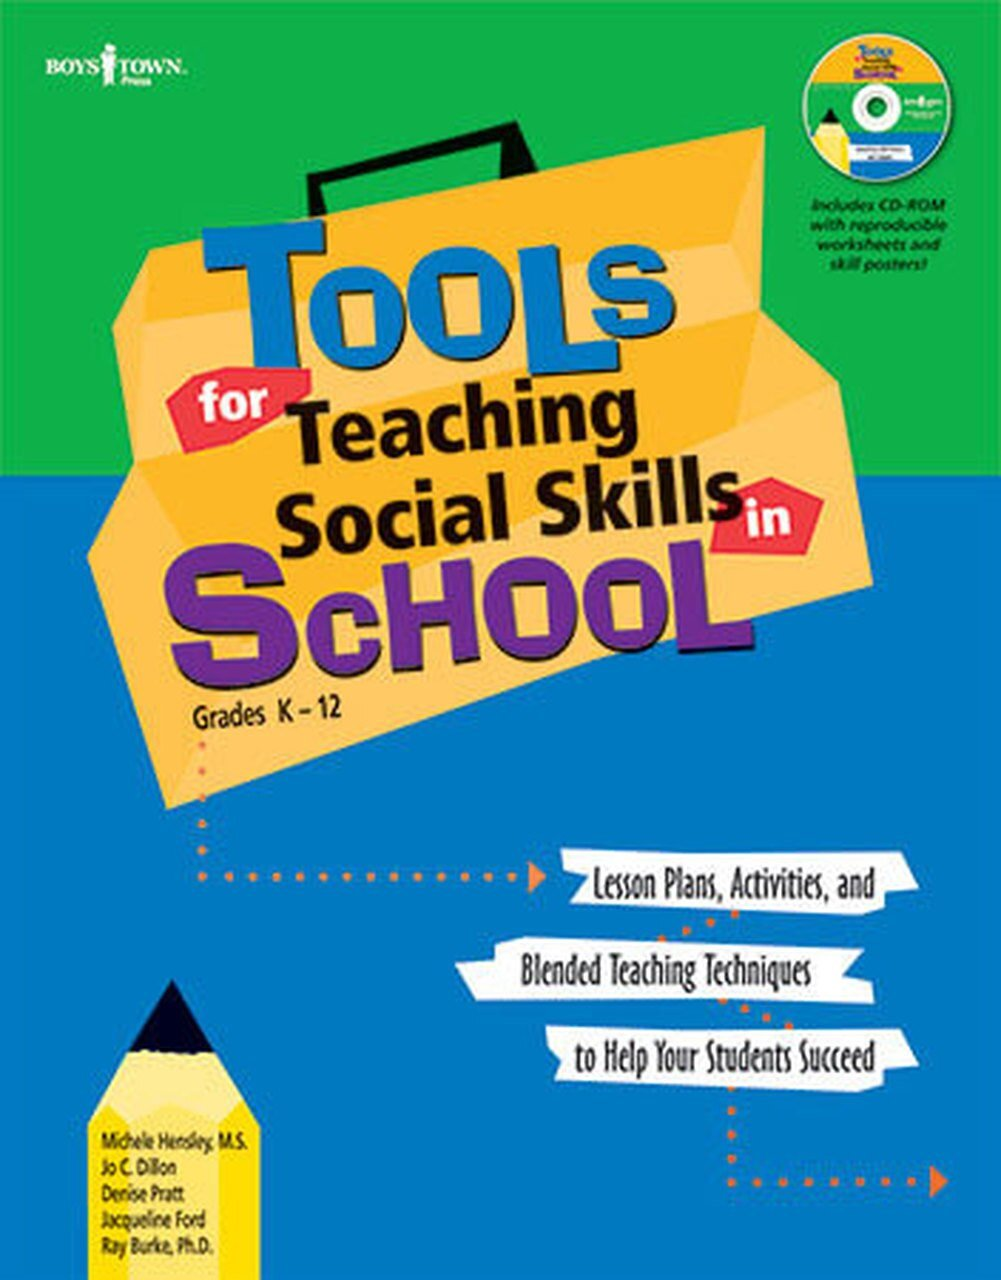 Social Skills Making Friends Worksheets tools for Teaching social Skills In School